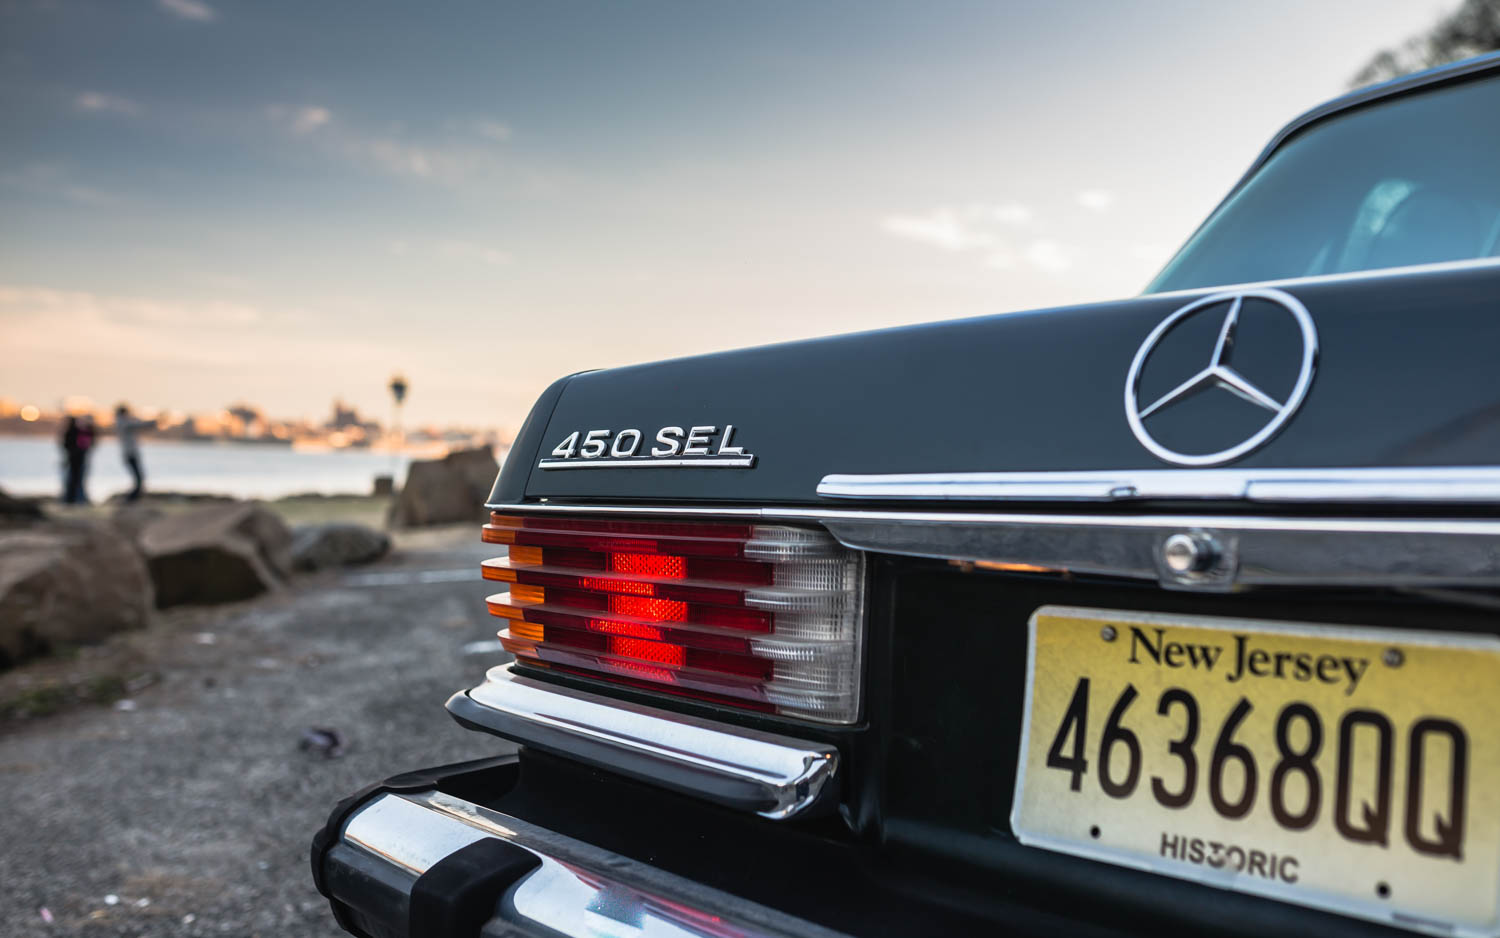 1974 Mercedes-Benz 450SEL badge